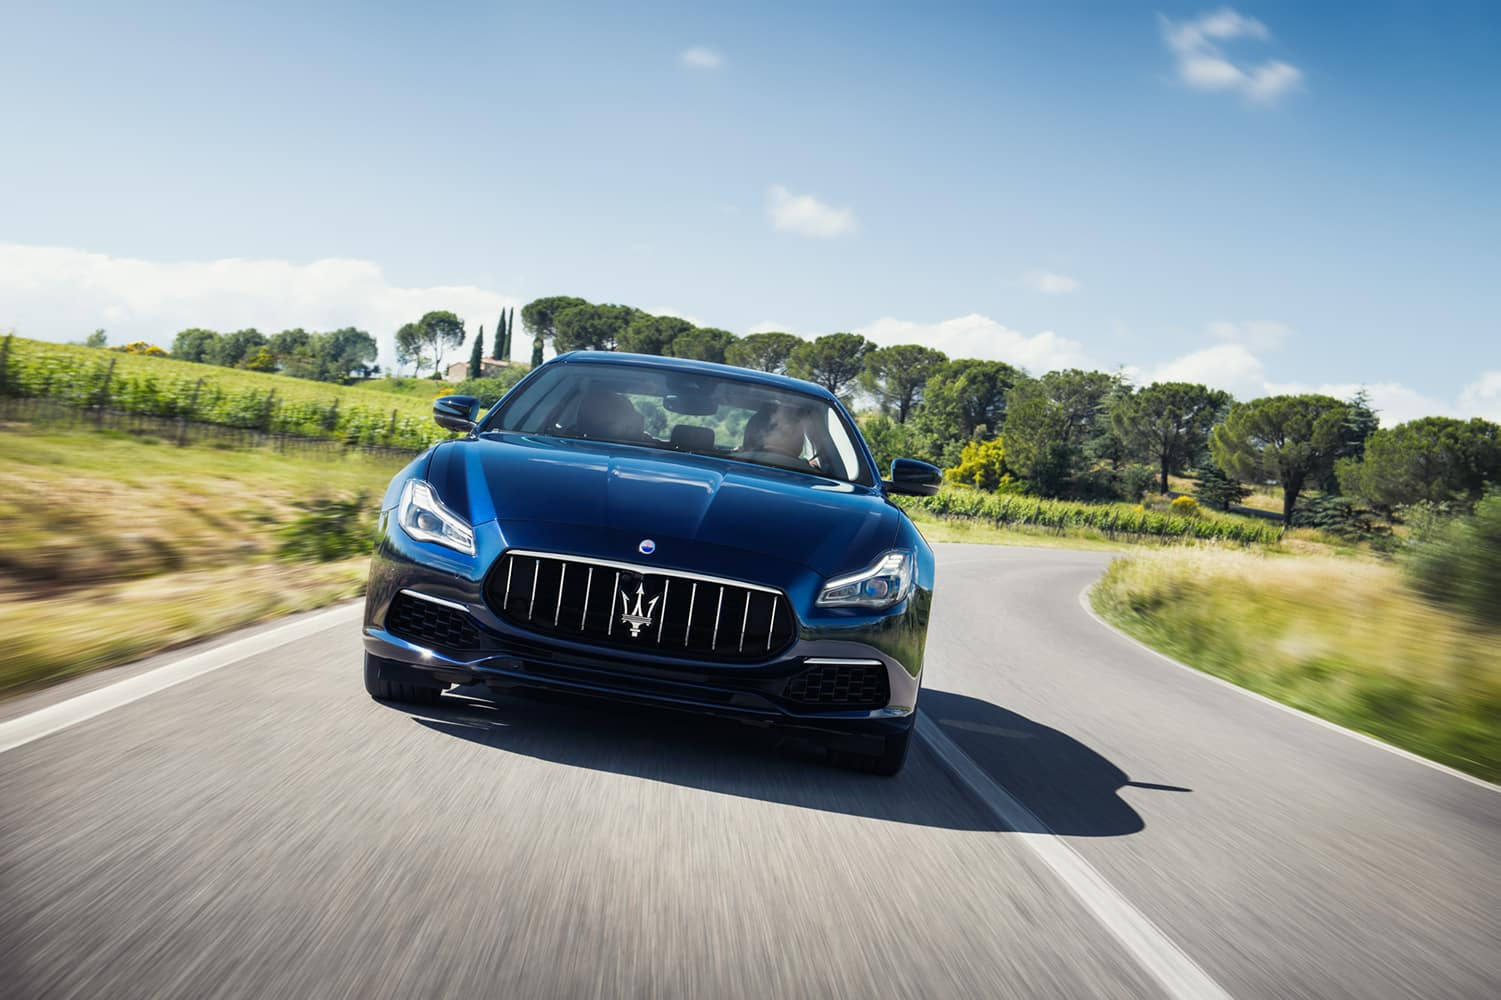 2020 Maserati Quattroporte driving through country roads | Bennett Maserati of Allentown is a Car Dealership near Wescosville PA in Allentown